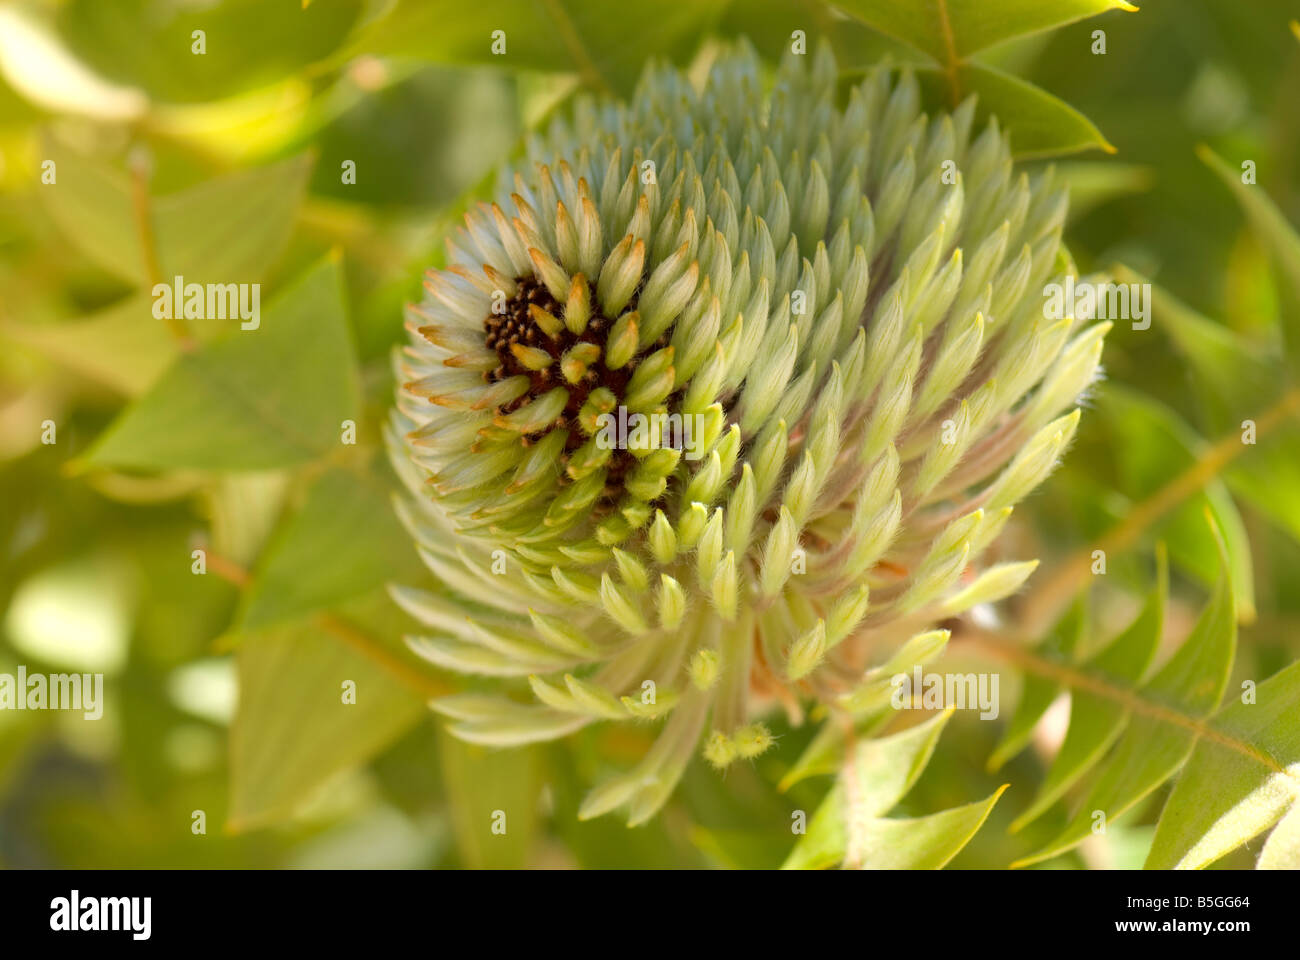 Close up of a Baxter's Banksia flower head - Stock Image